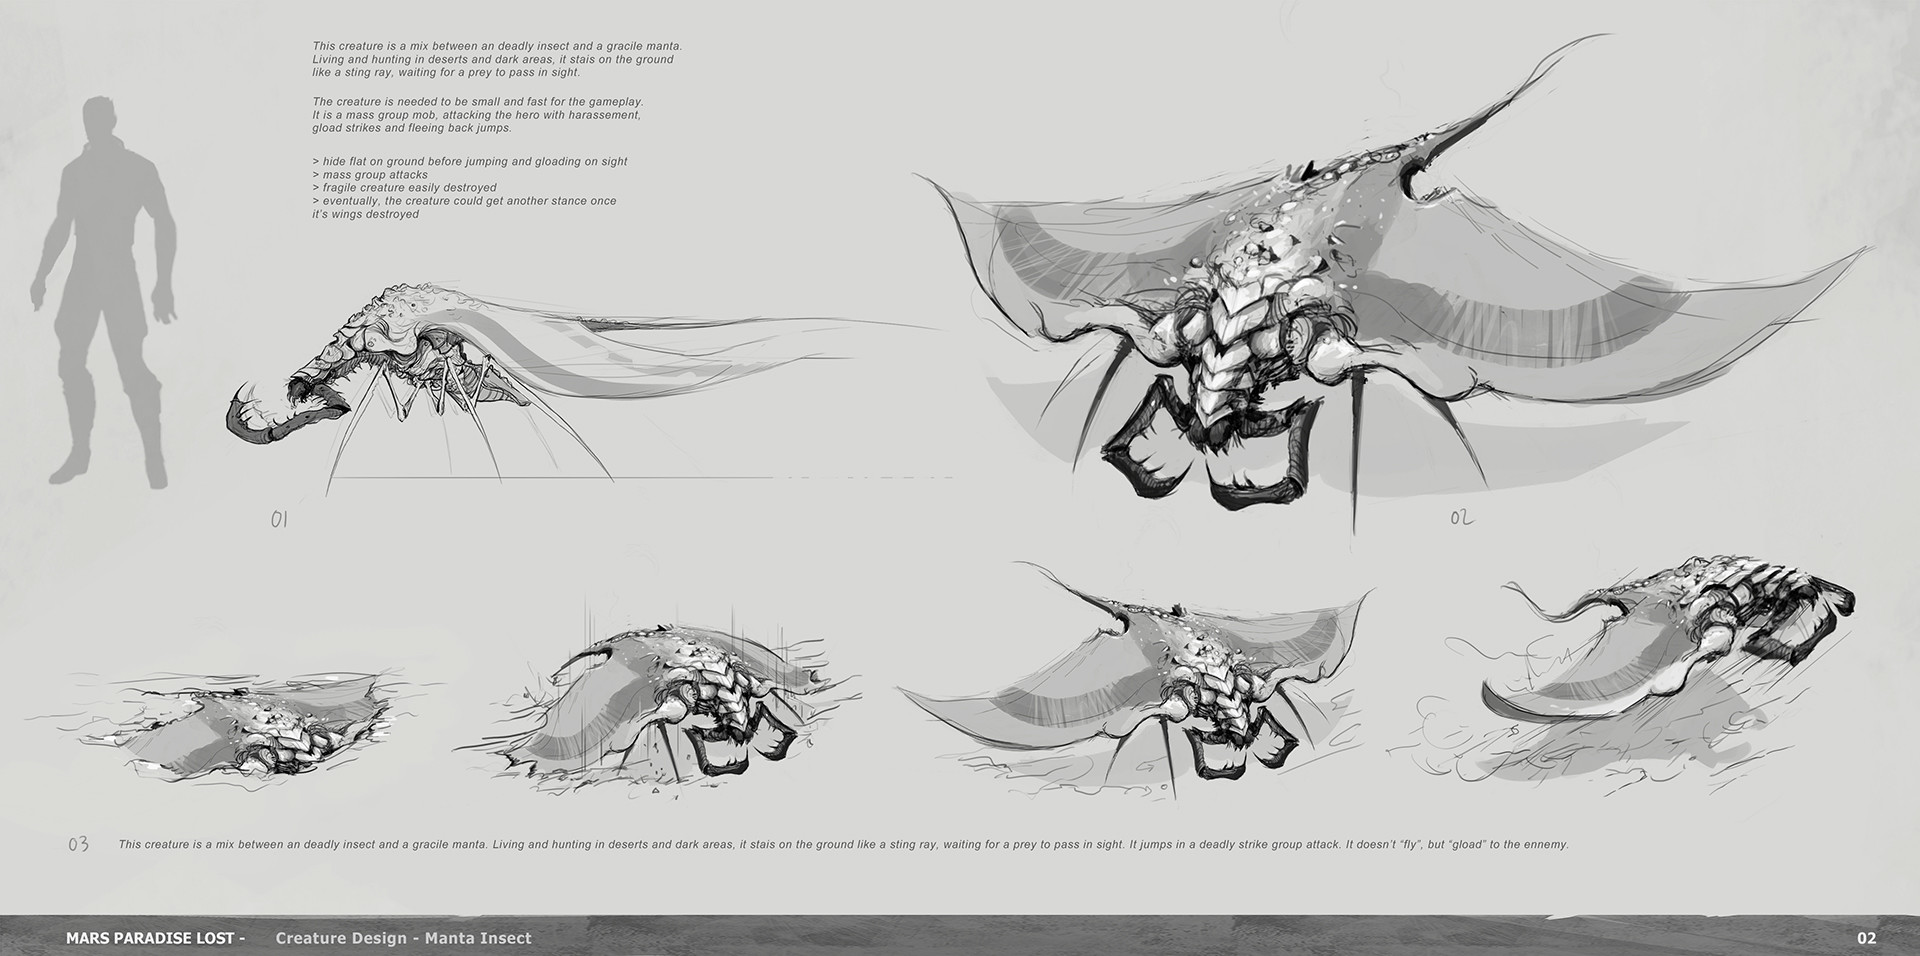 Alexandre chaudret mpl creature manta insect research02